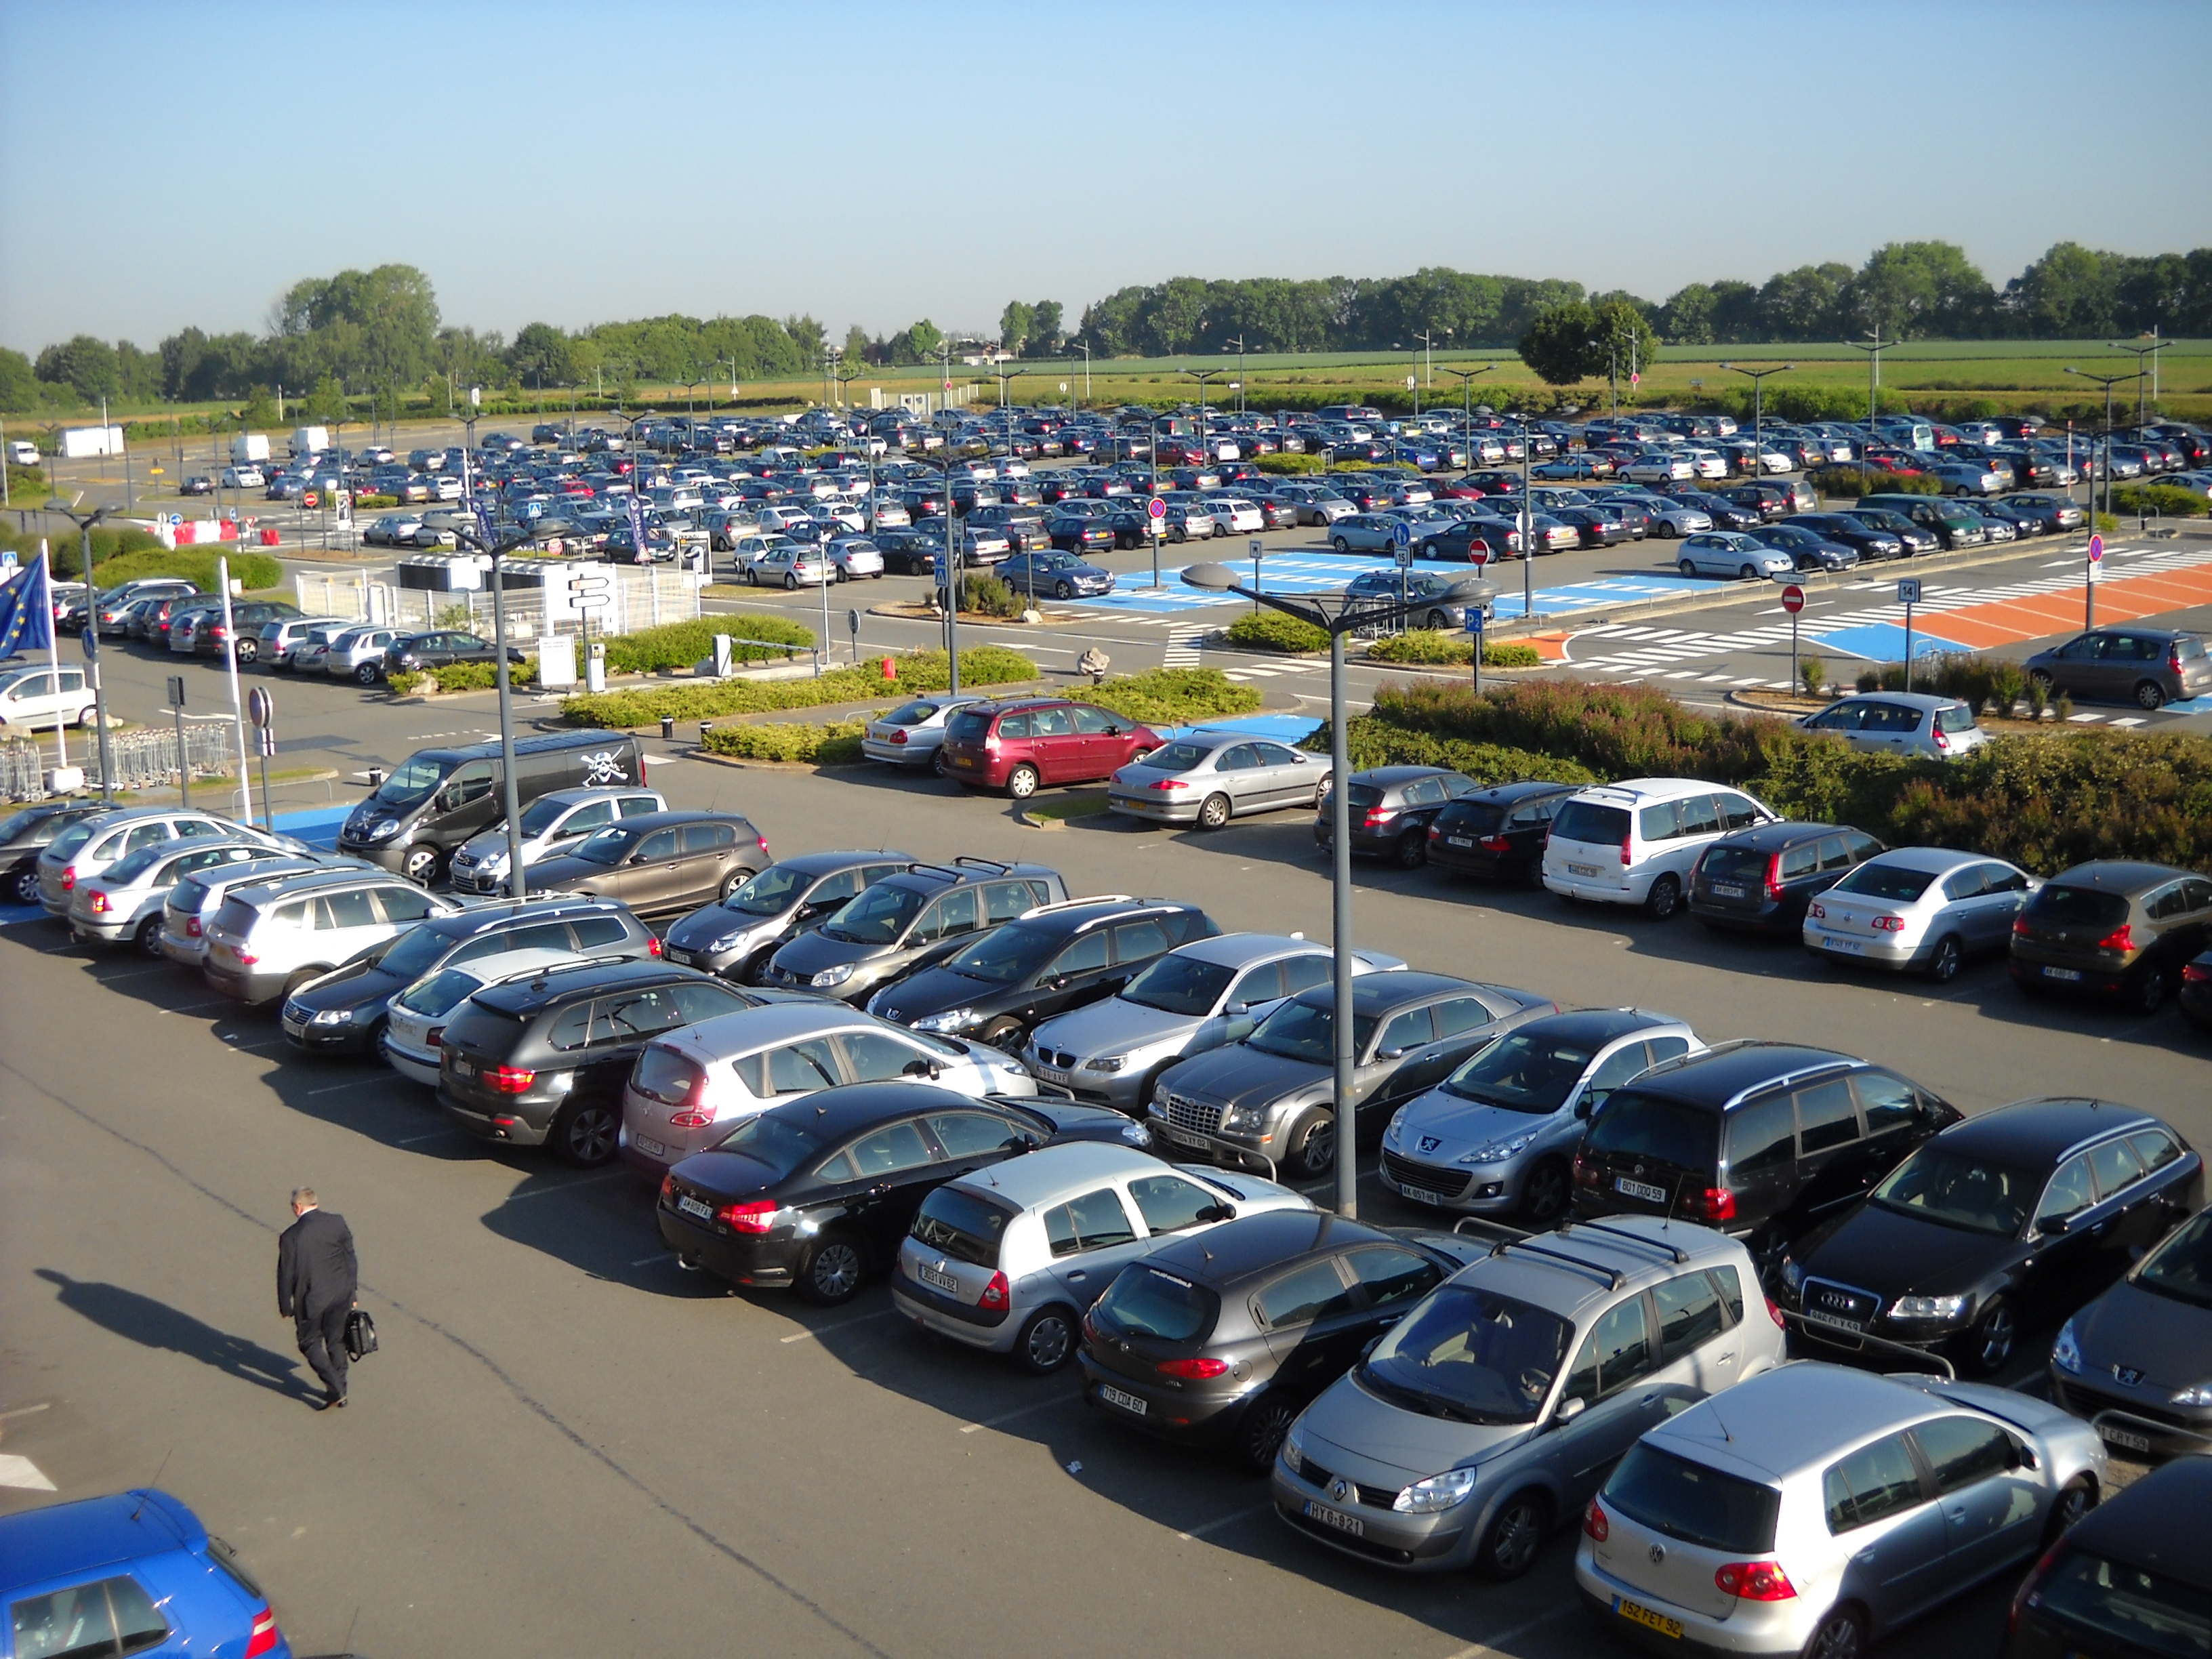 Car Parks In Lme Regis